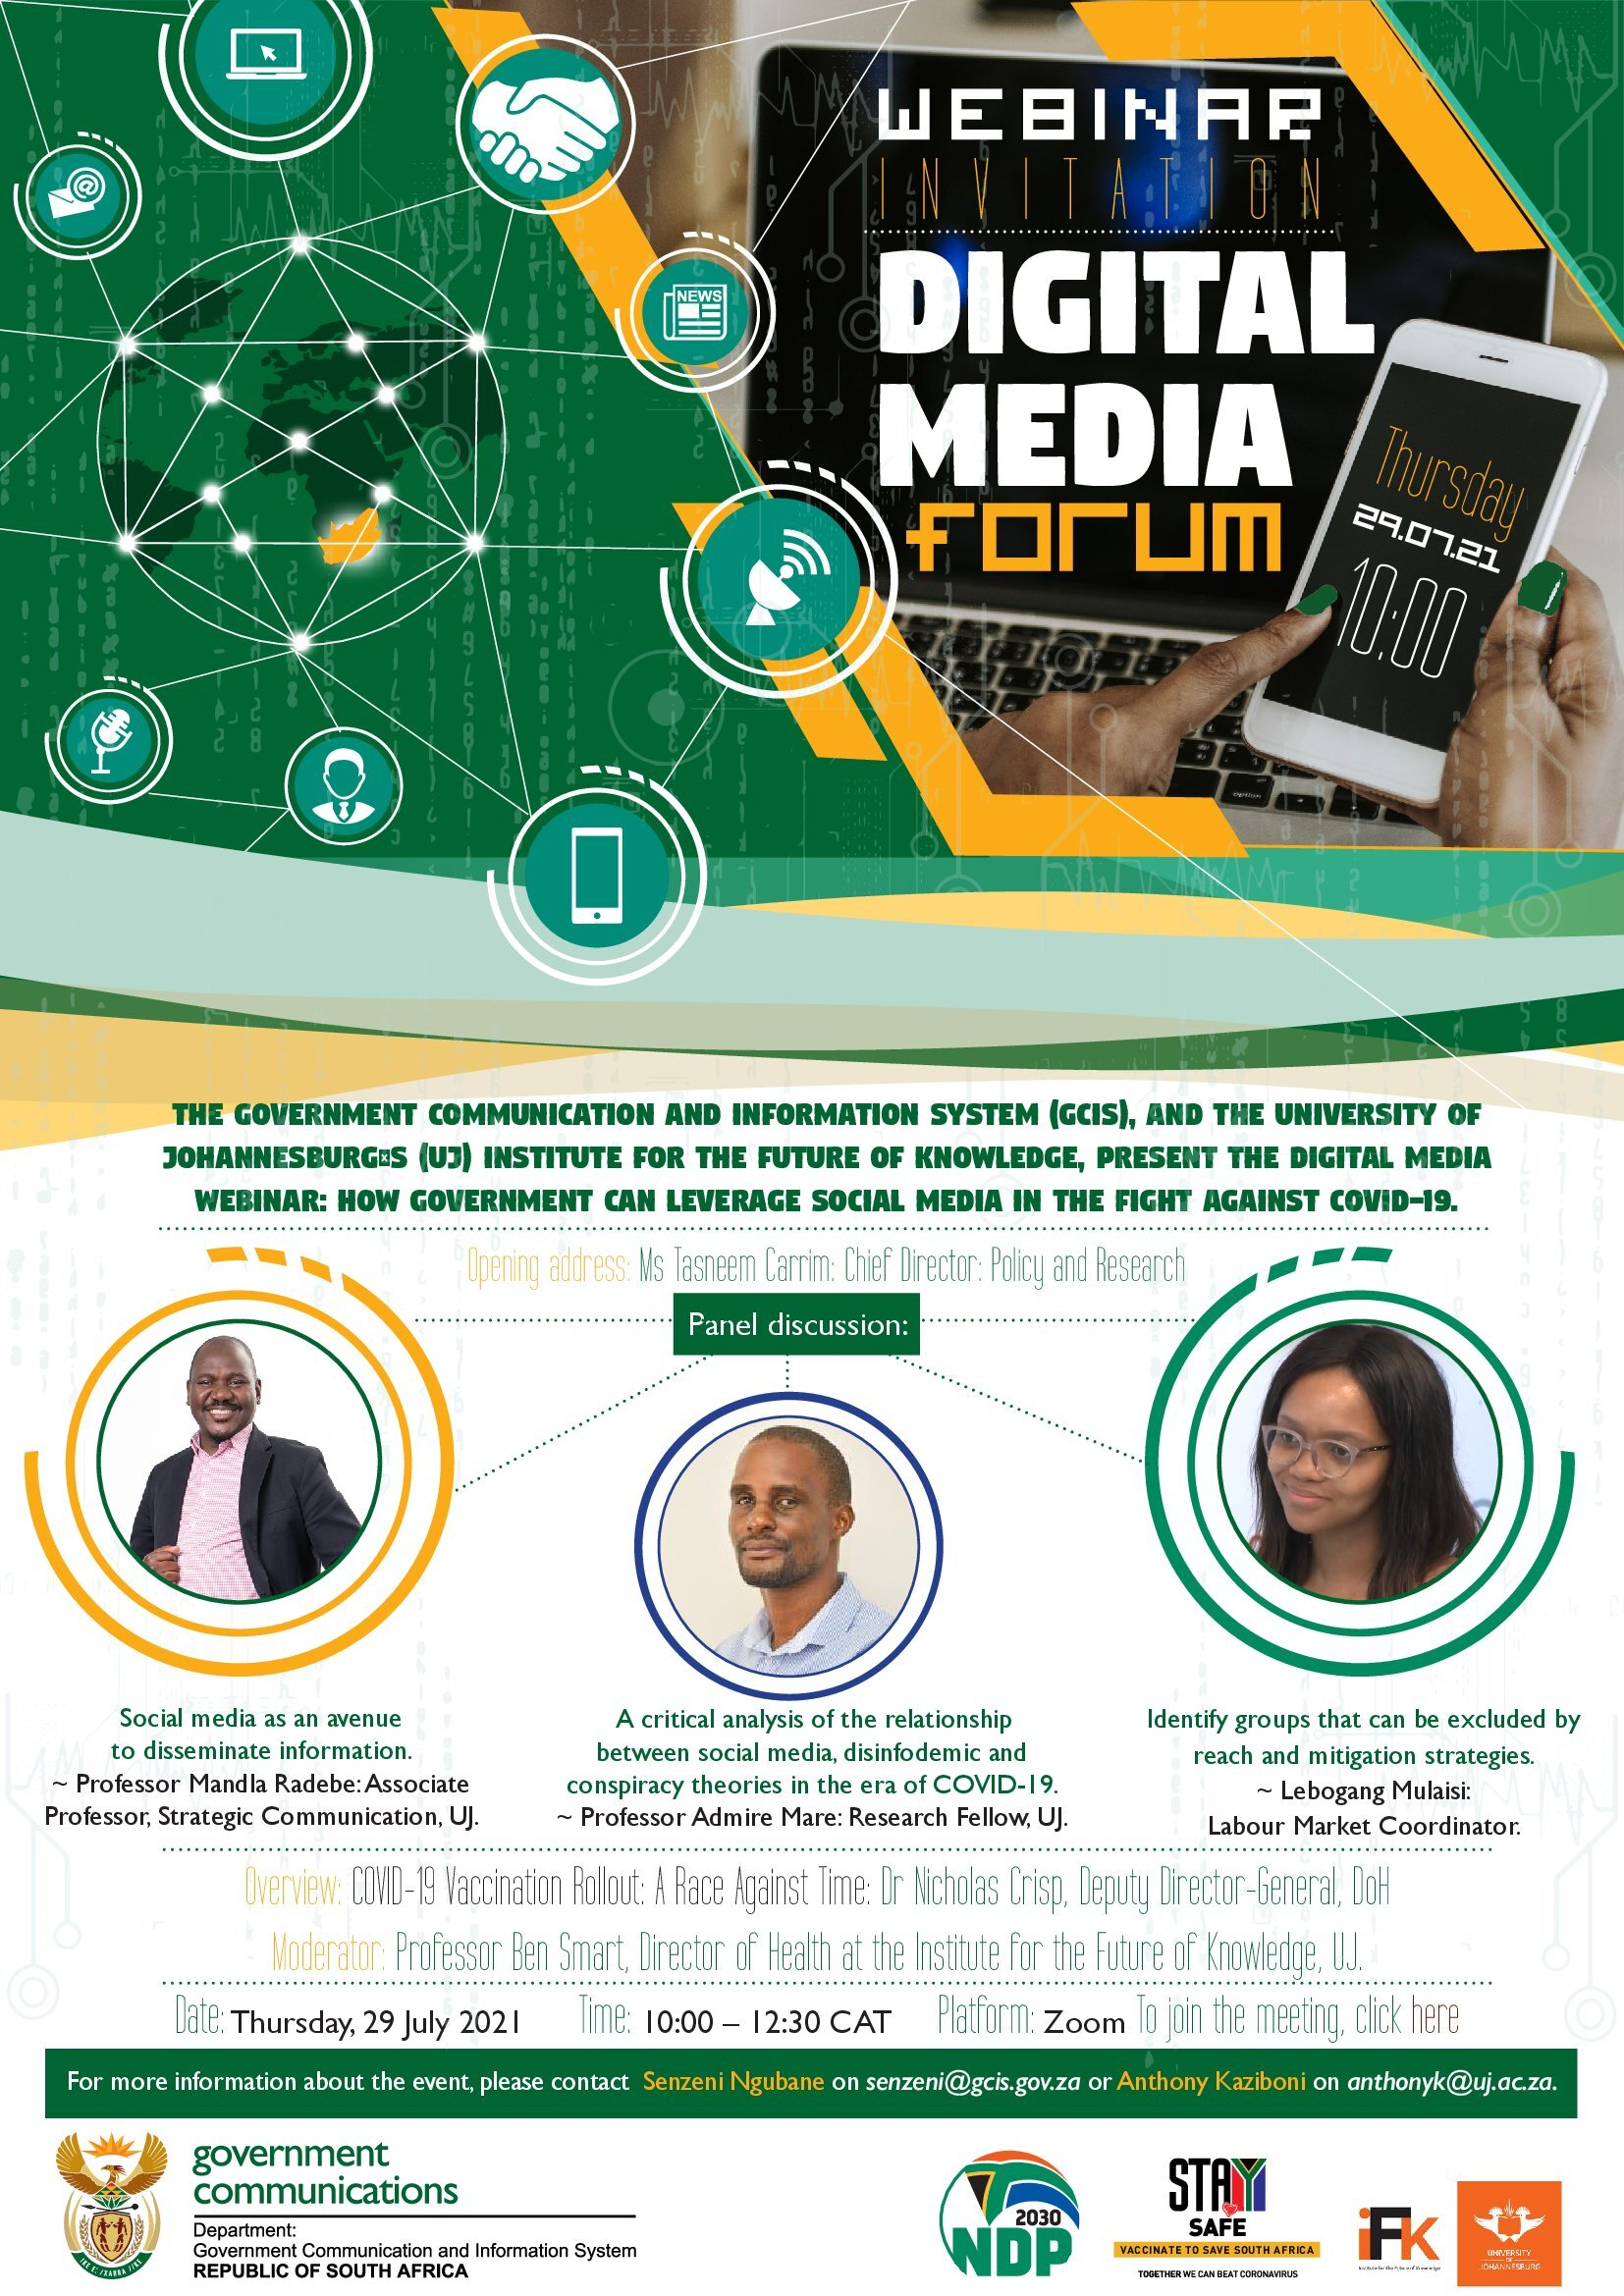 Virtual Digital Forum: How the Government of South Africa can Leverage Social Media in the fight against Covid-19